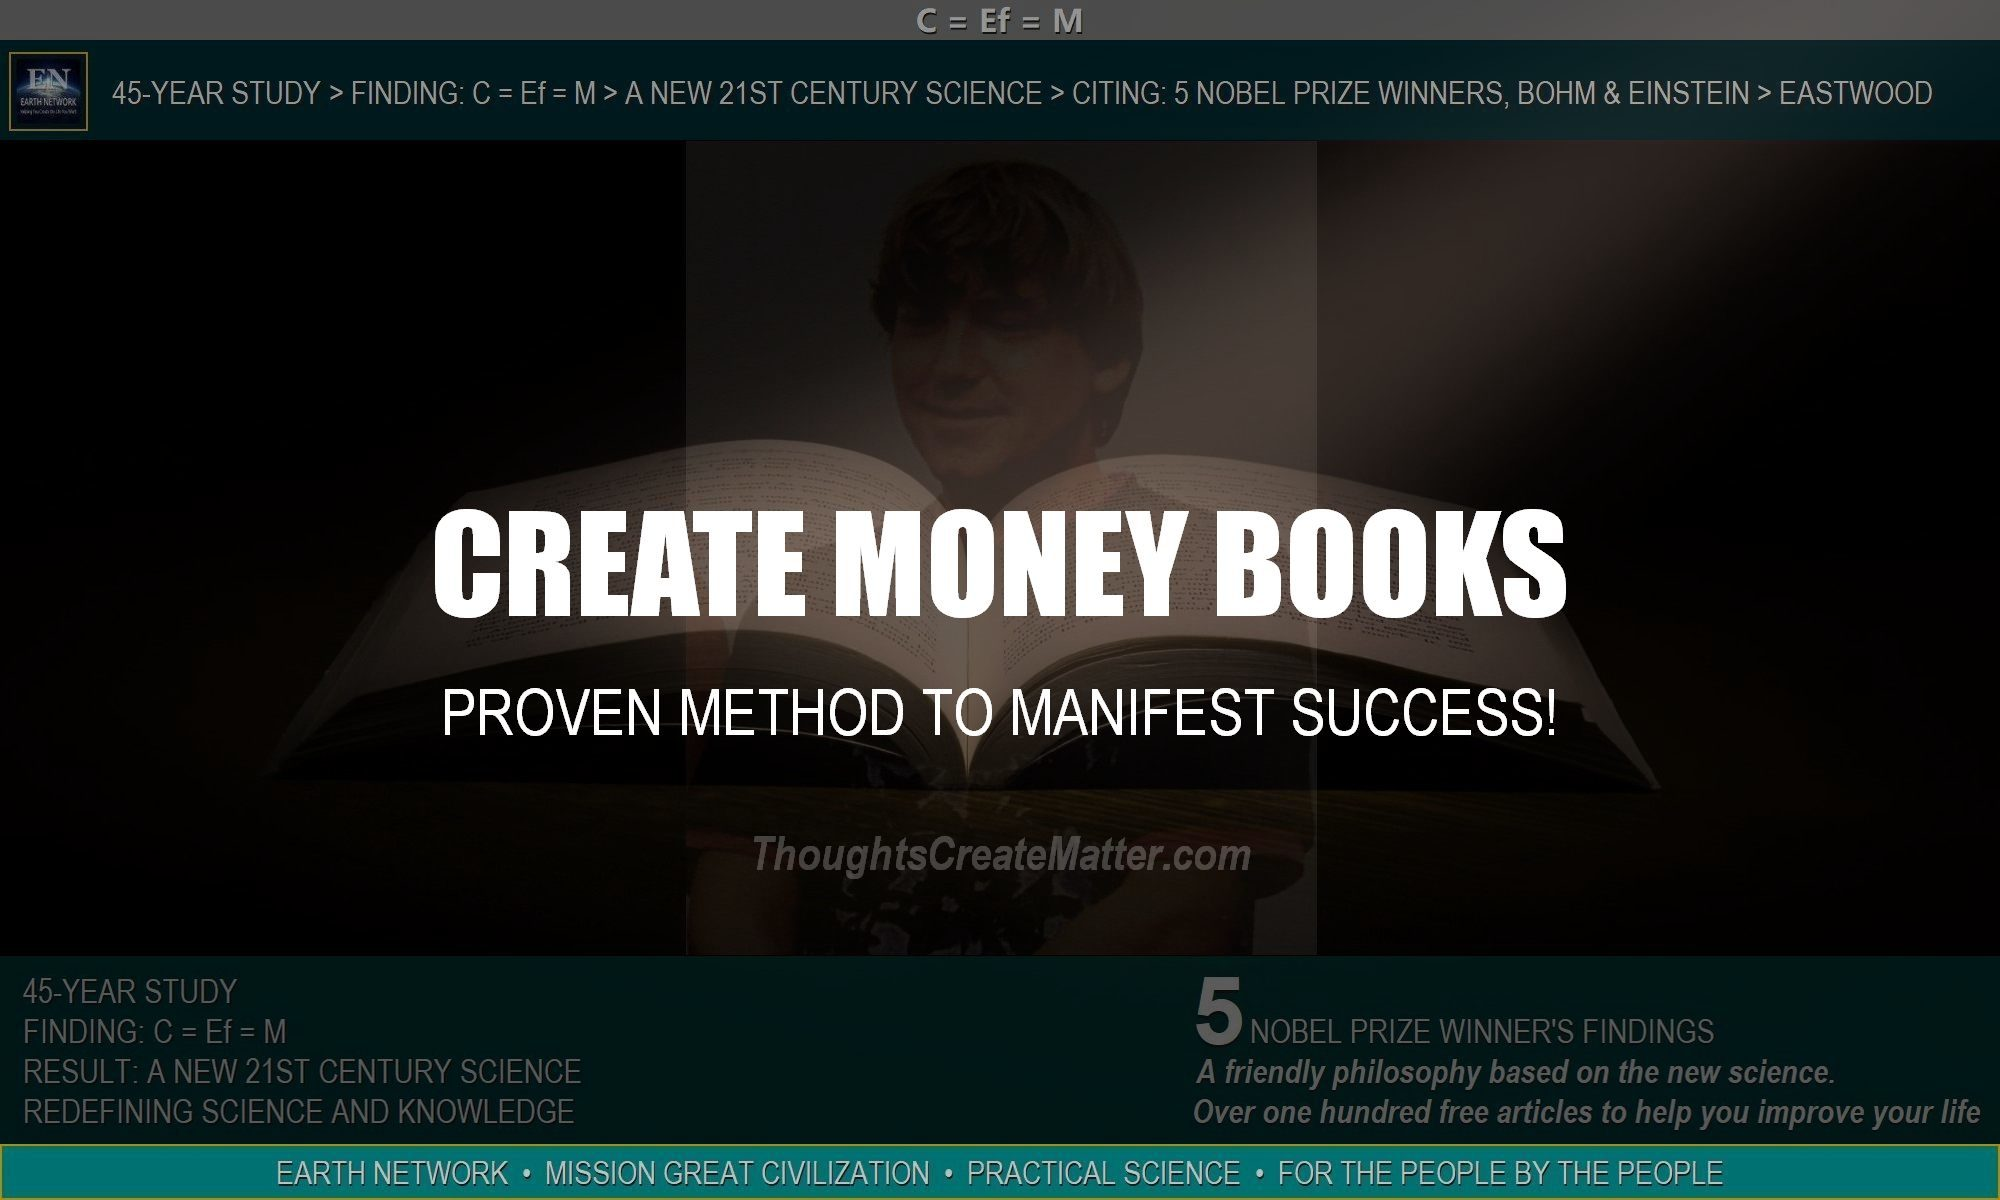 William Eastwood's create money books and ebooks. He proves you can manifest money and success.